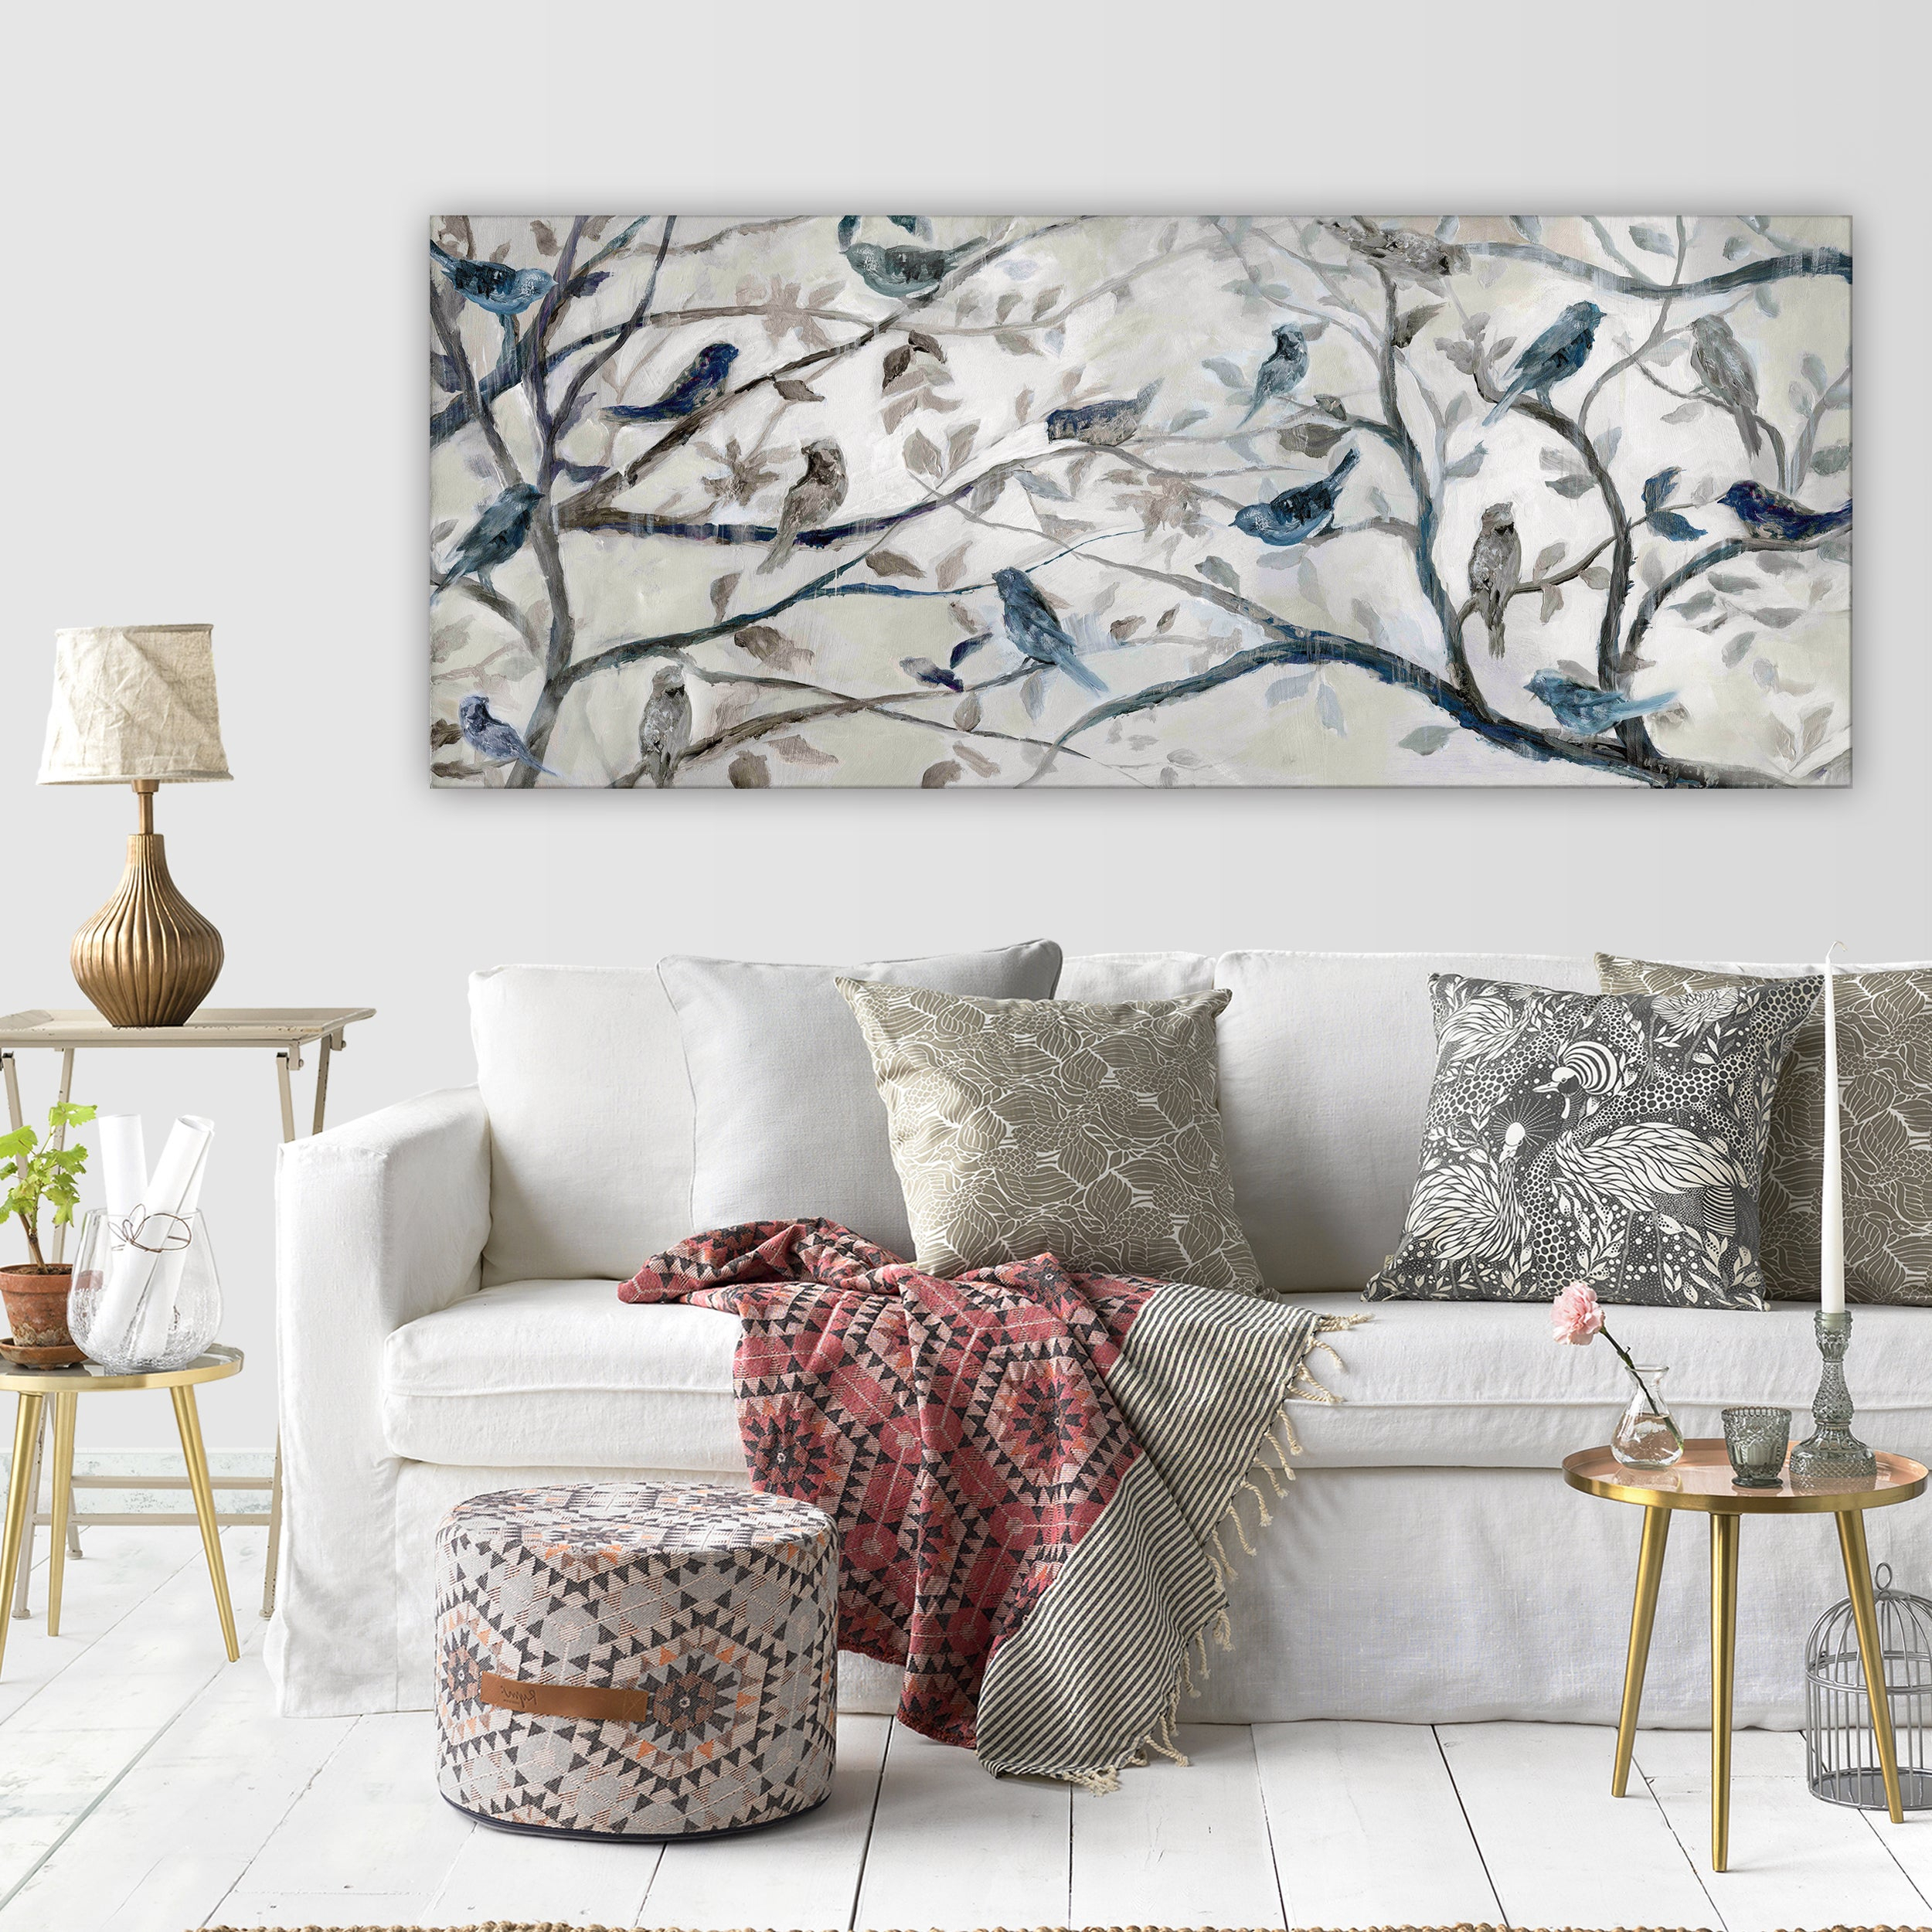 Most Popular Metal Wall Decor By Charlton Home Pertaining To Shop Wexford Home 'morning Chorus' Gallery Wrapped Canvas Wall Art (Gallery 16 of 20)